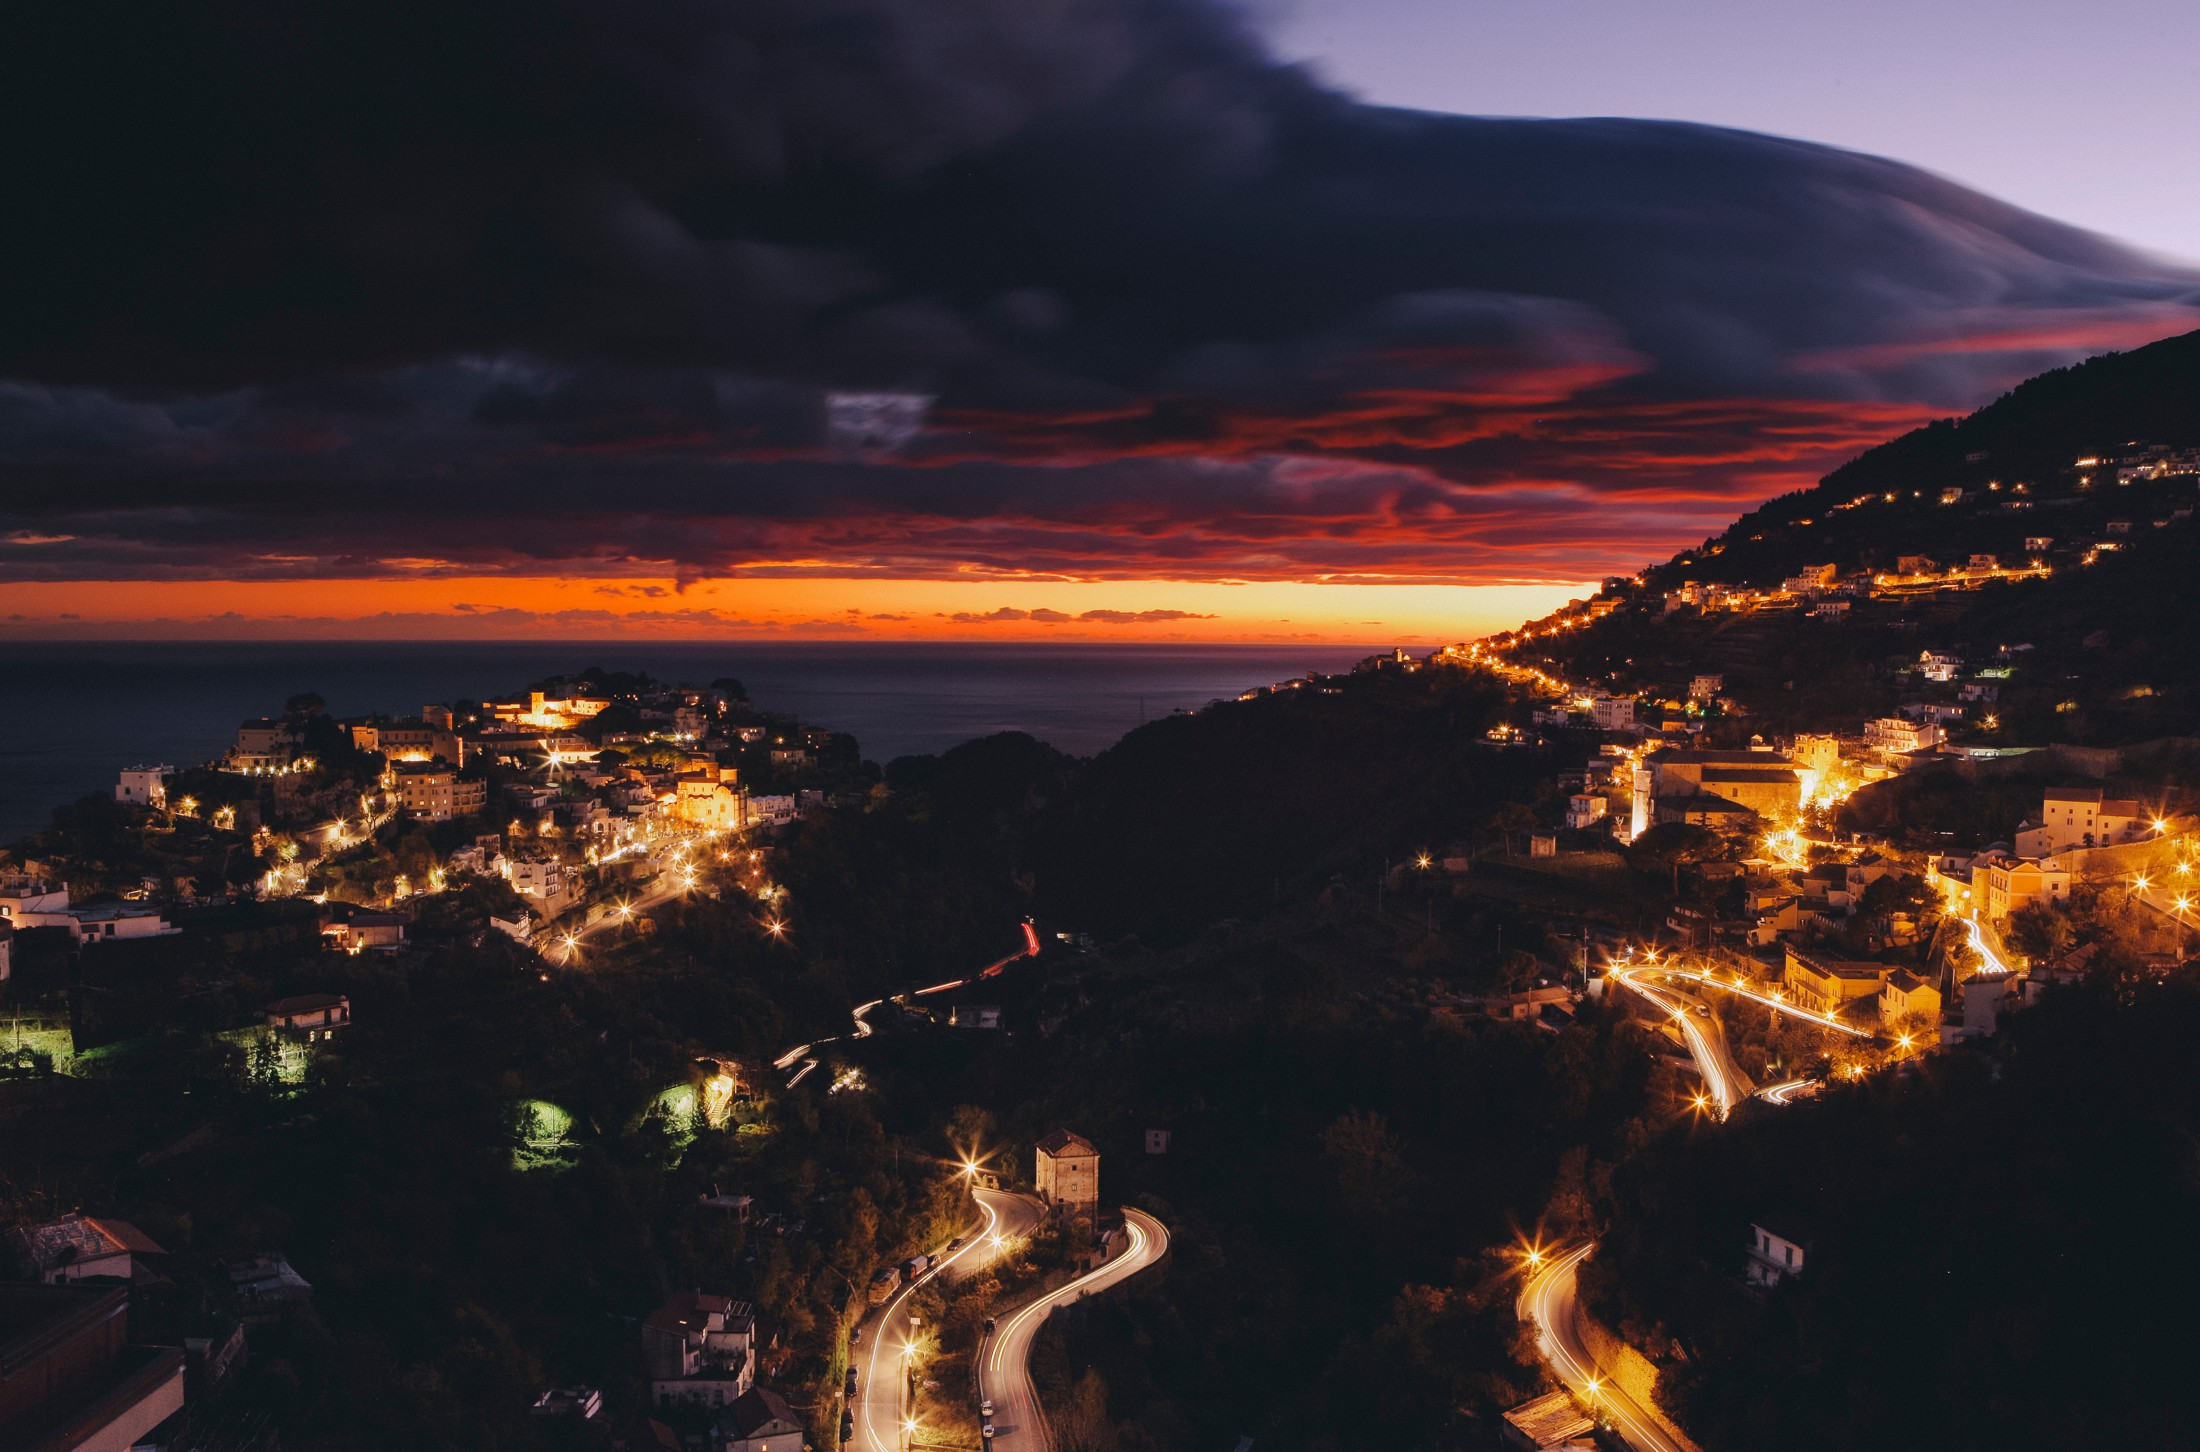 a night view of ravello surroundings